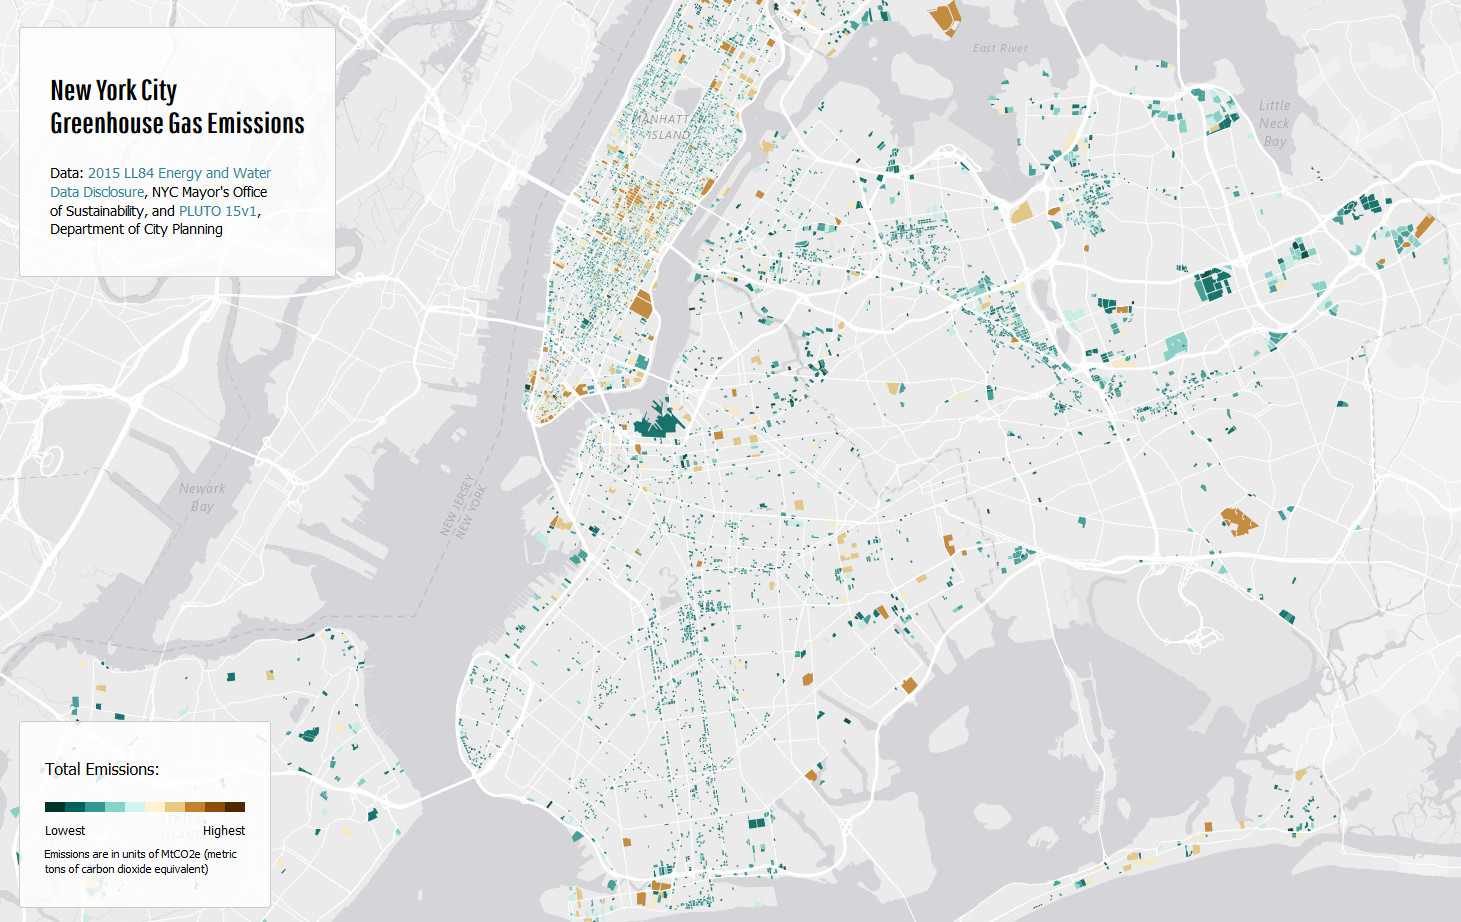 New York City greenhouse gas emissions